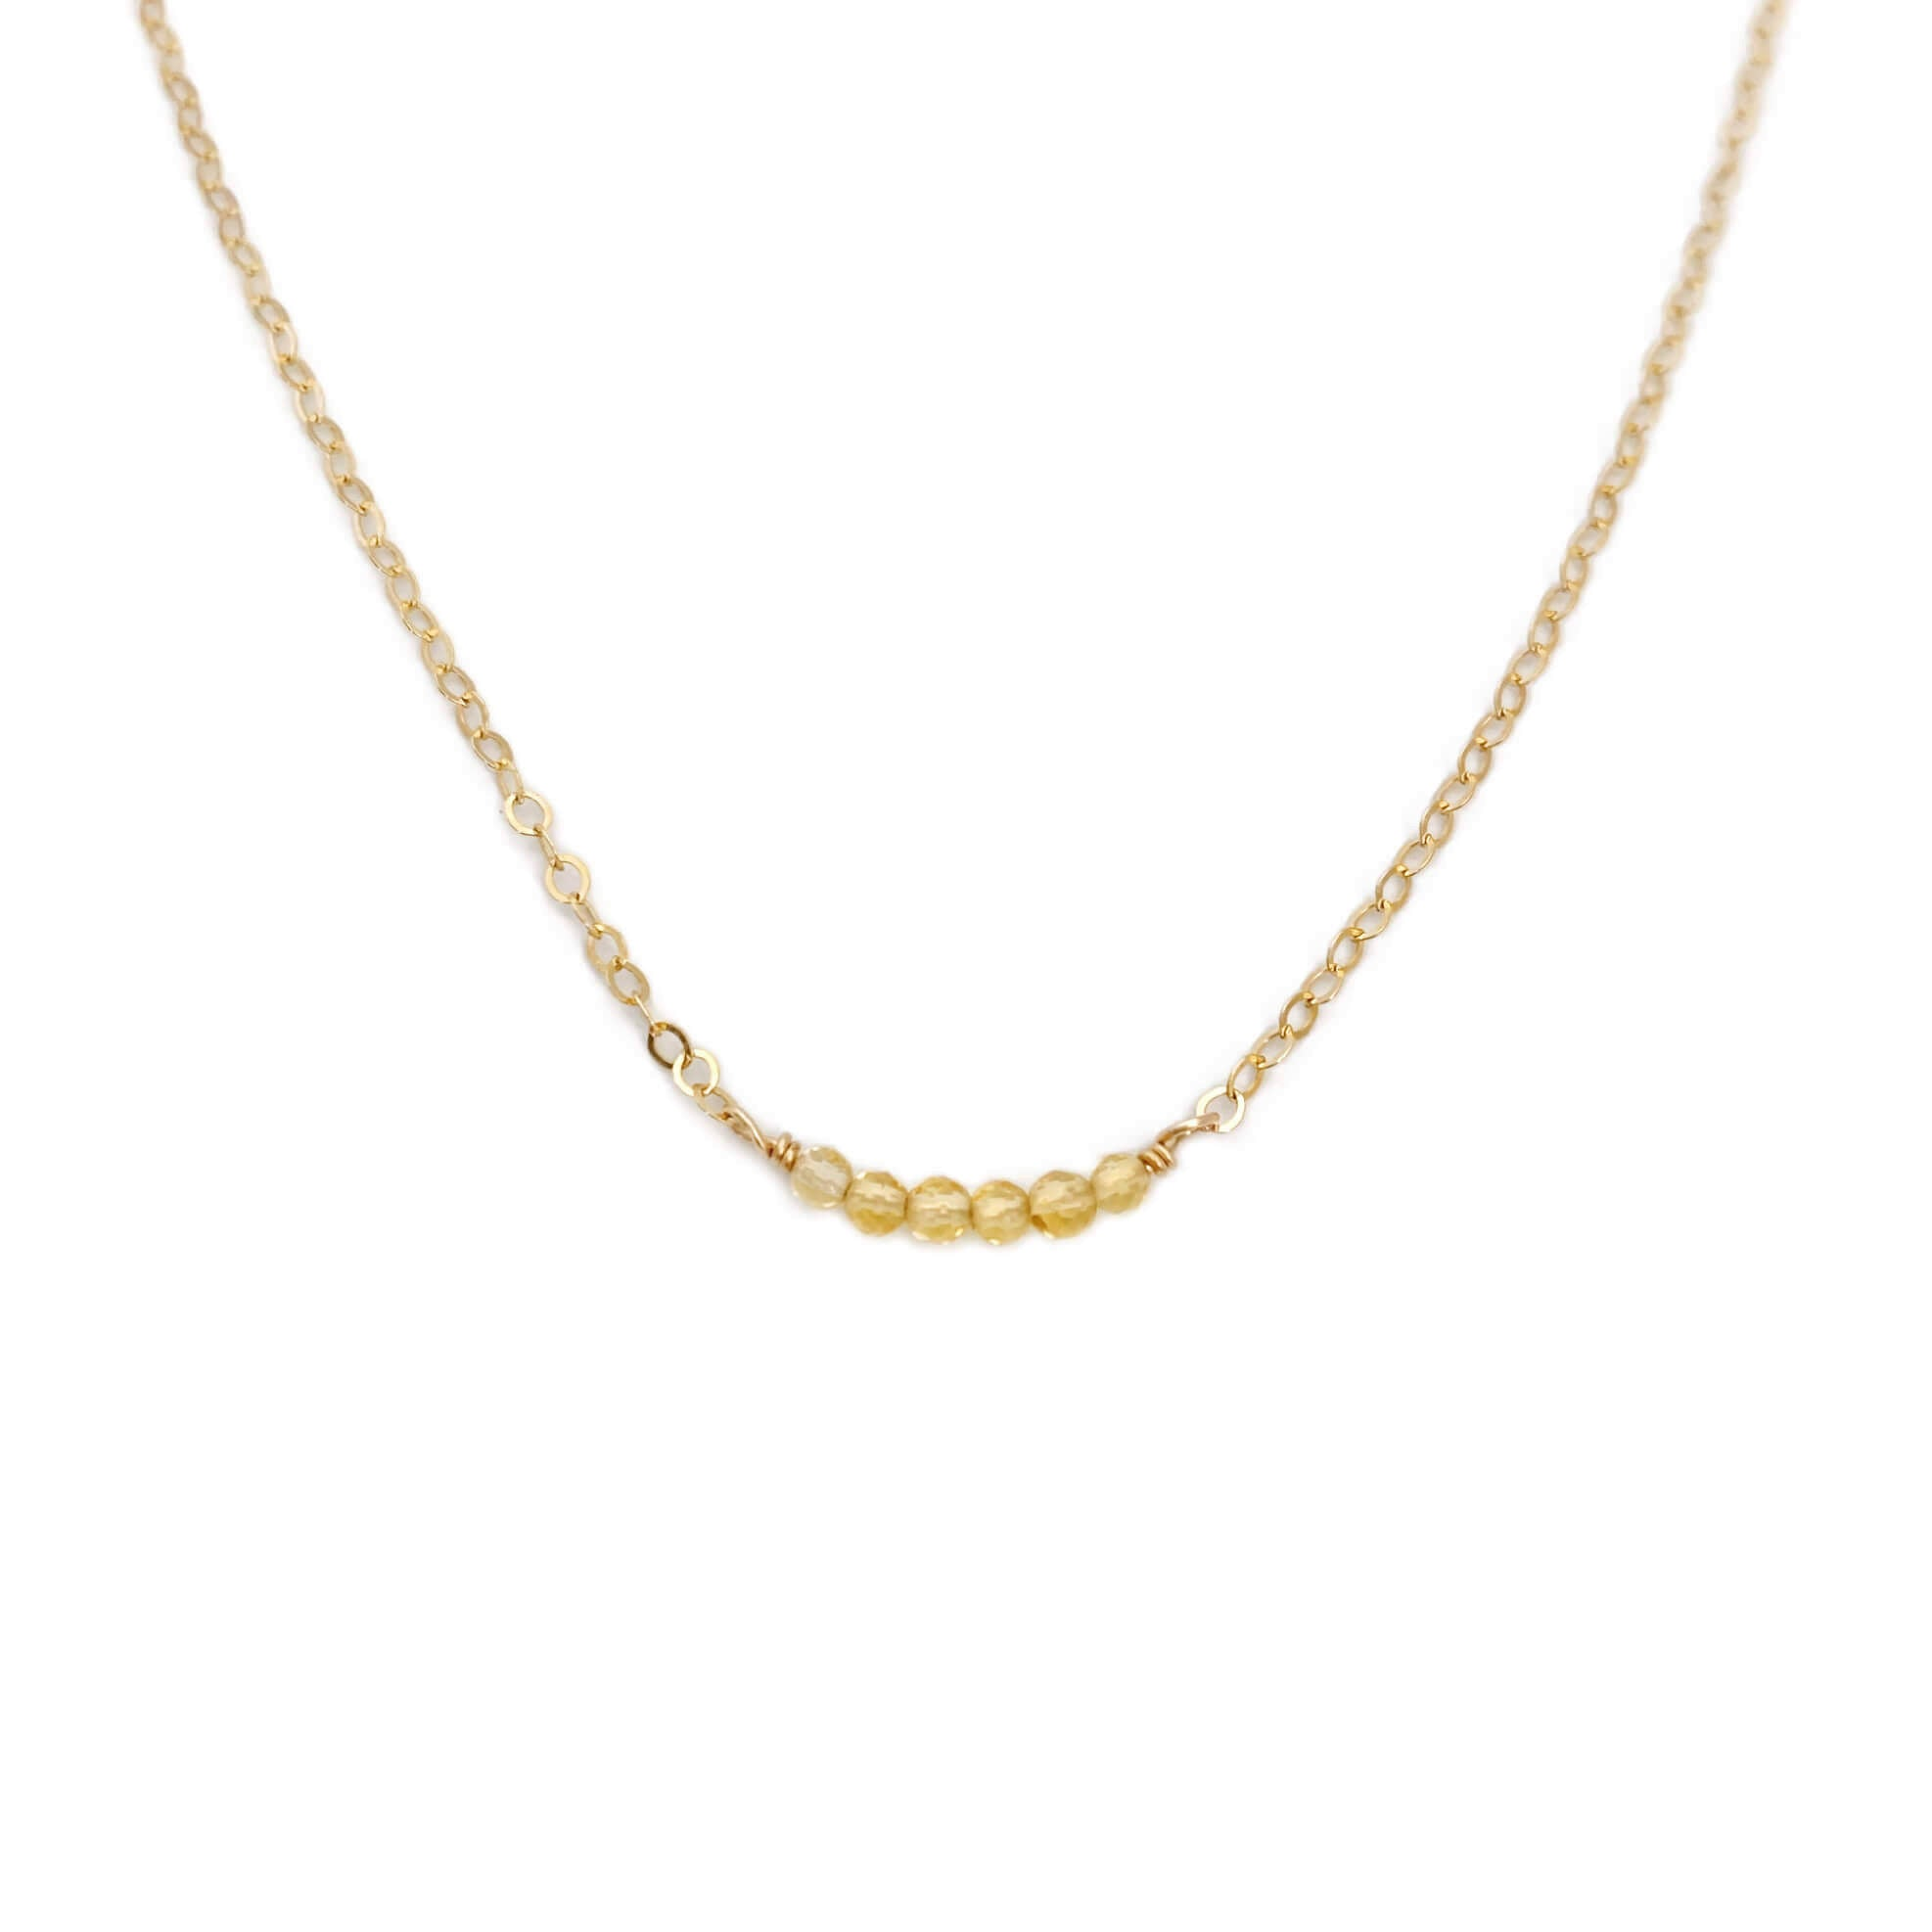 This citrine bead necklace is made of 14k gold chain. It can be made in sterling silver or gold filled material.